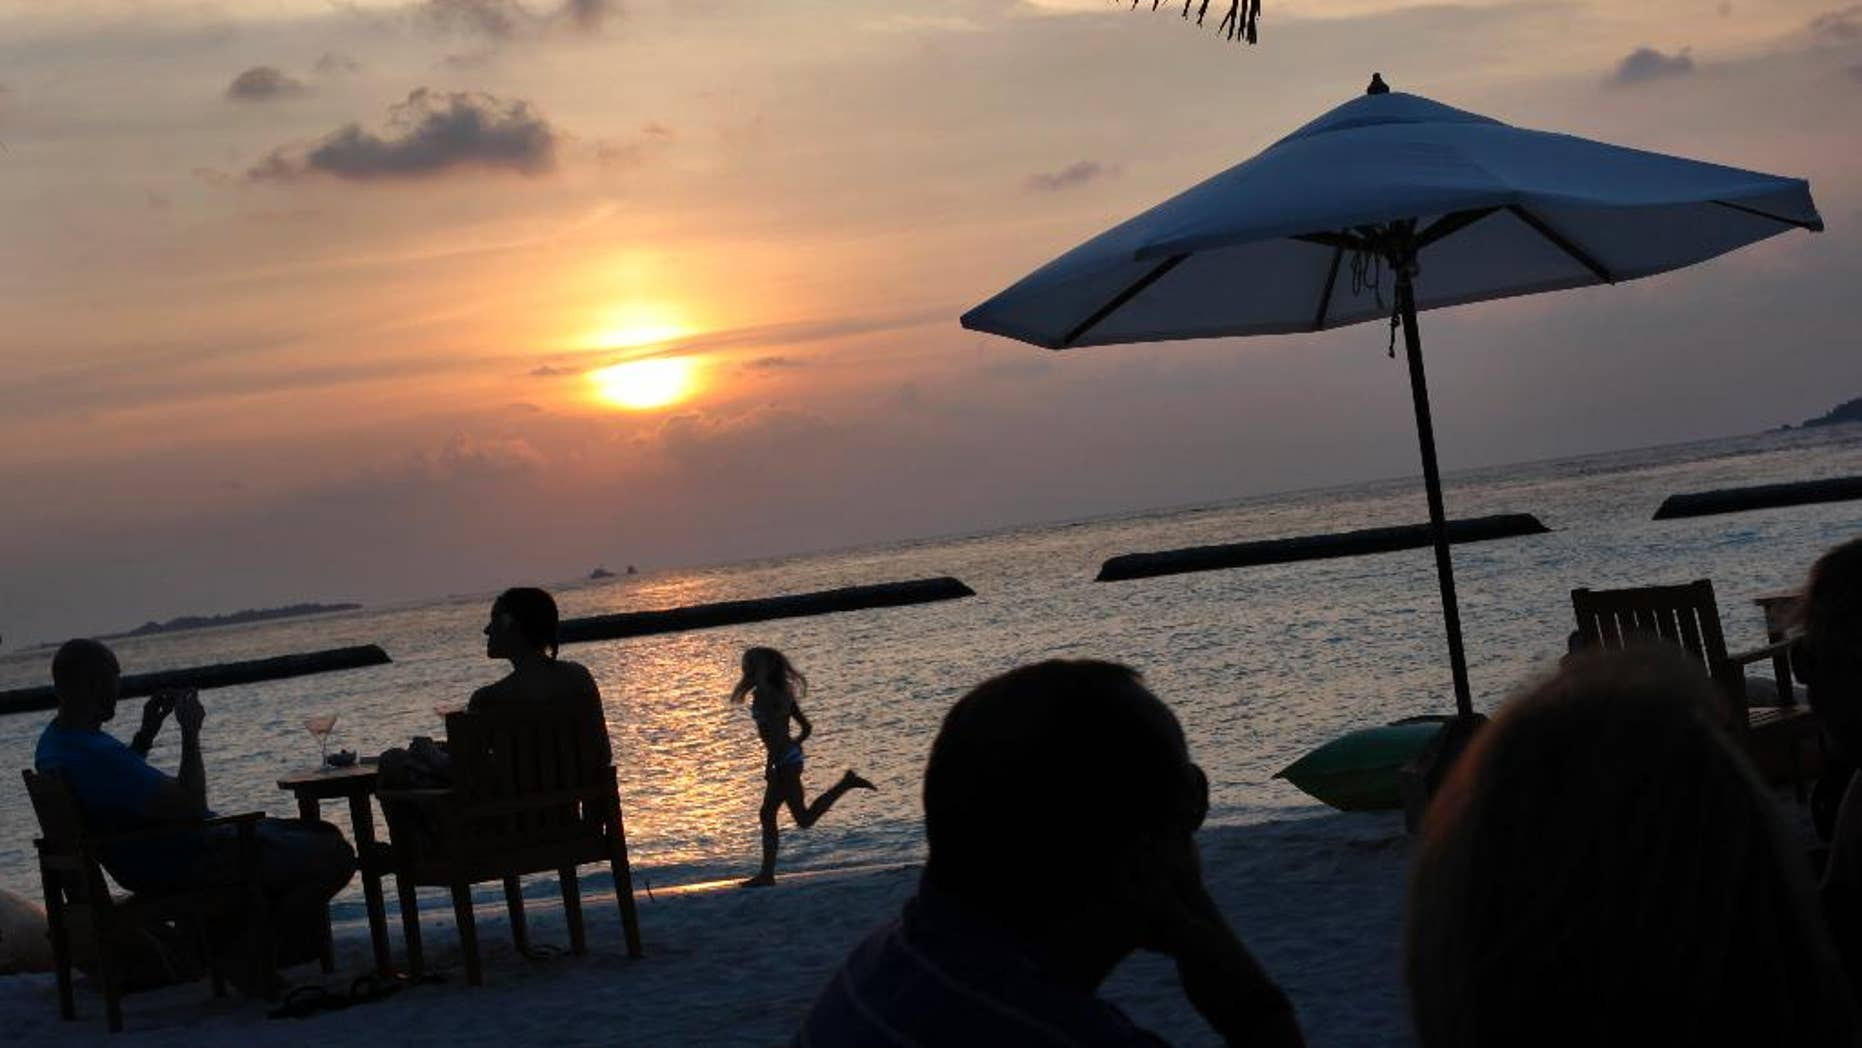 FILE - In this Feb. 16, 2012, file photo, foreign tourists gather at a sand-bar to watch sunset at Kurumba resort in Male atoll, Maldives. Maldives, best known for its palm-fringed beaches and luxury resorts, but riven by political power struggles since becoming a democracy only seven years ago. An explosion in September 2015 aboard the presidential boat set the Maldives on course for its latest political shakeup, with the Vice President Ahmed Adeeb arrested over the weekend on suspicion of high treason for allegedly plotting to assassinate the country's leader. (AP Photo/Gemunu Amarasinghe, File)